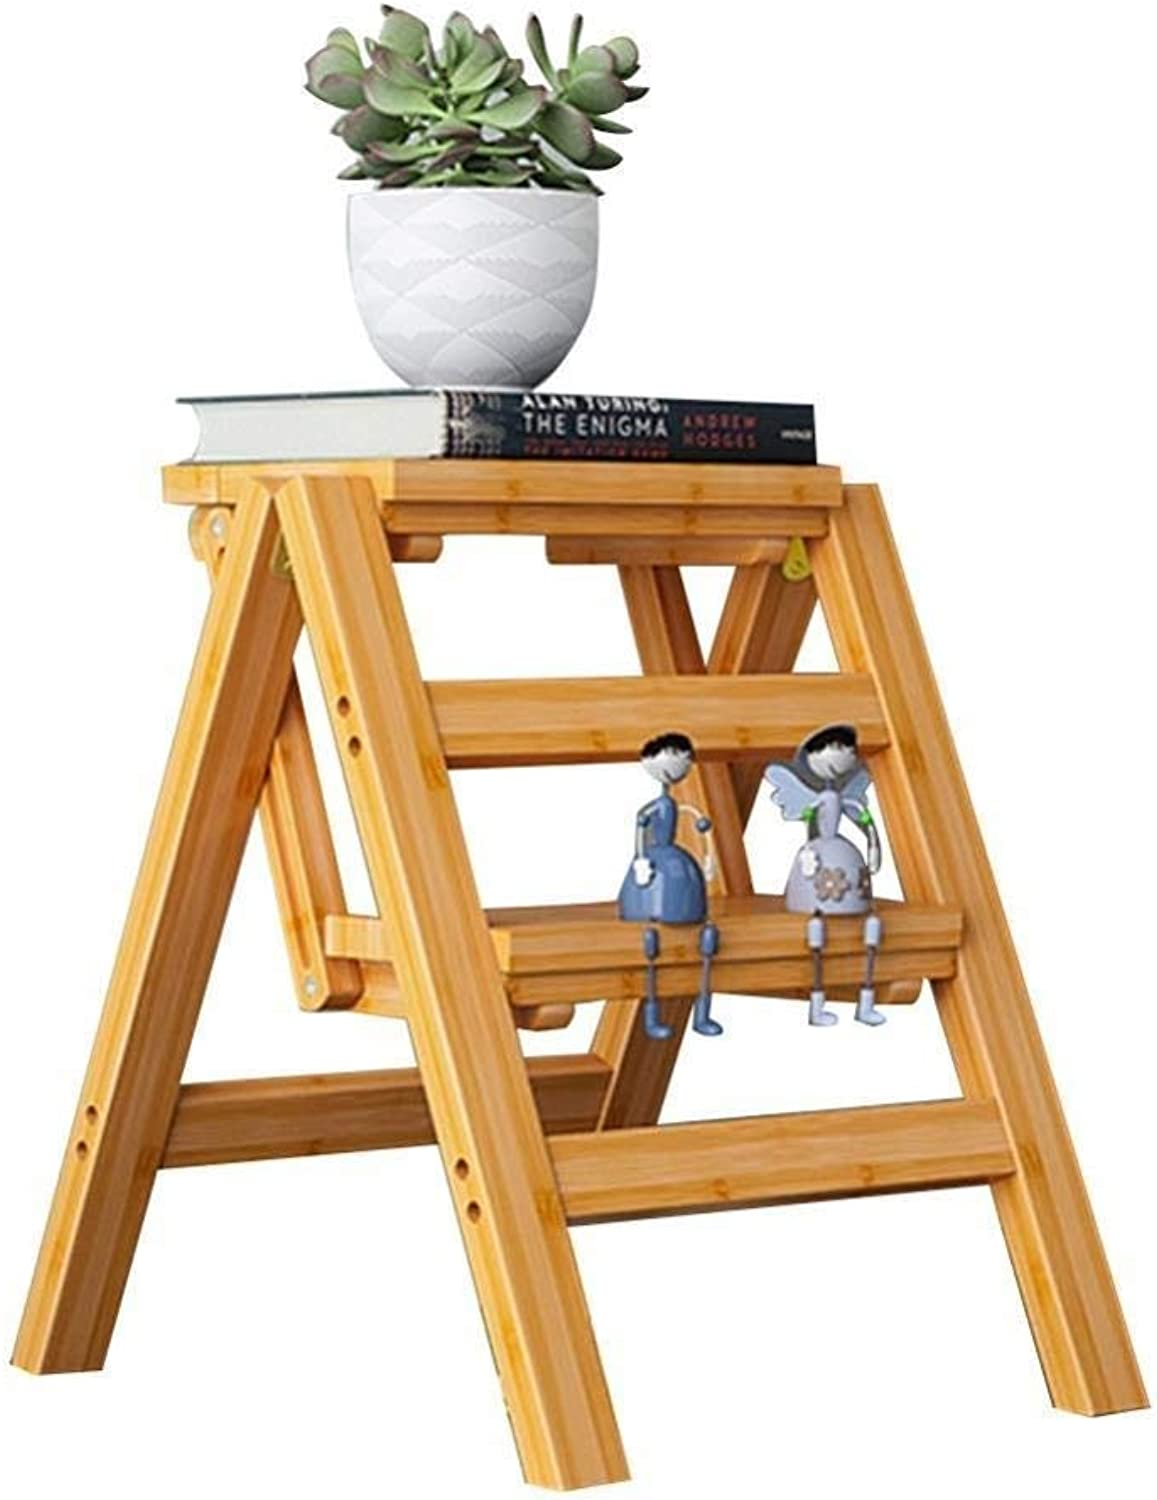 Step Stool Step Ladder Folding Ladder Stool Staircase Solid Wood Multifunction Interior Change The shoes Bench, 2 3 4 Steps Stool Step Stool (Size   38x46x50cm)